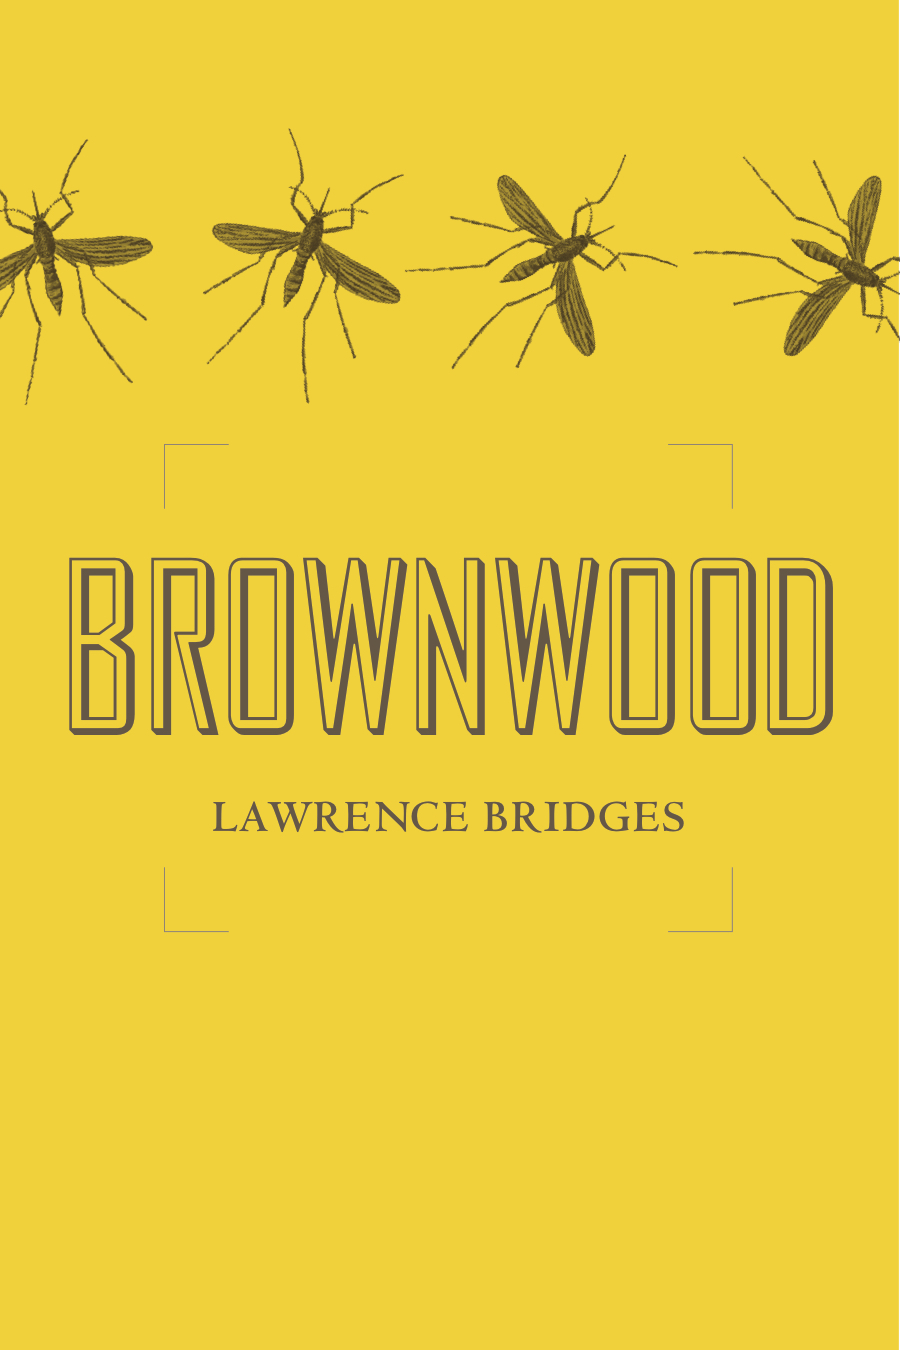 Brownwood by Lawrence Bridges.jpg